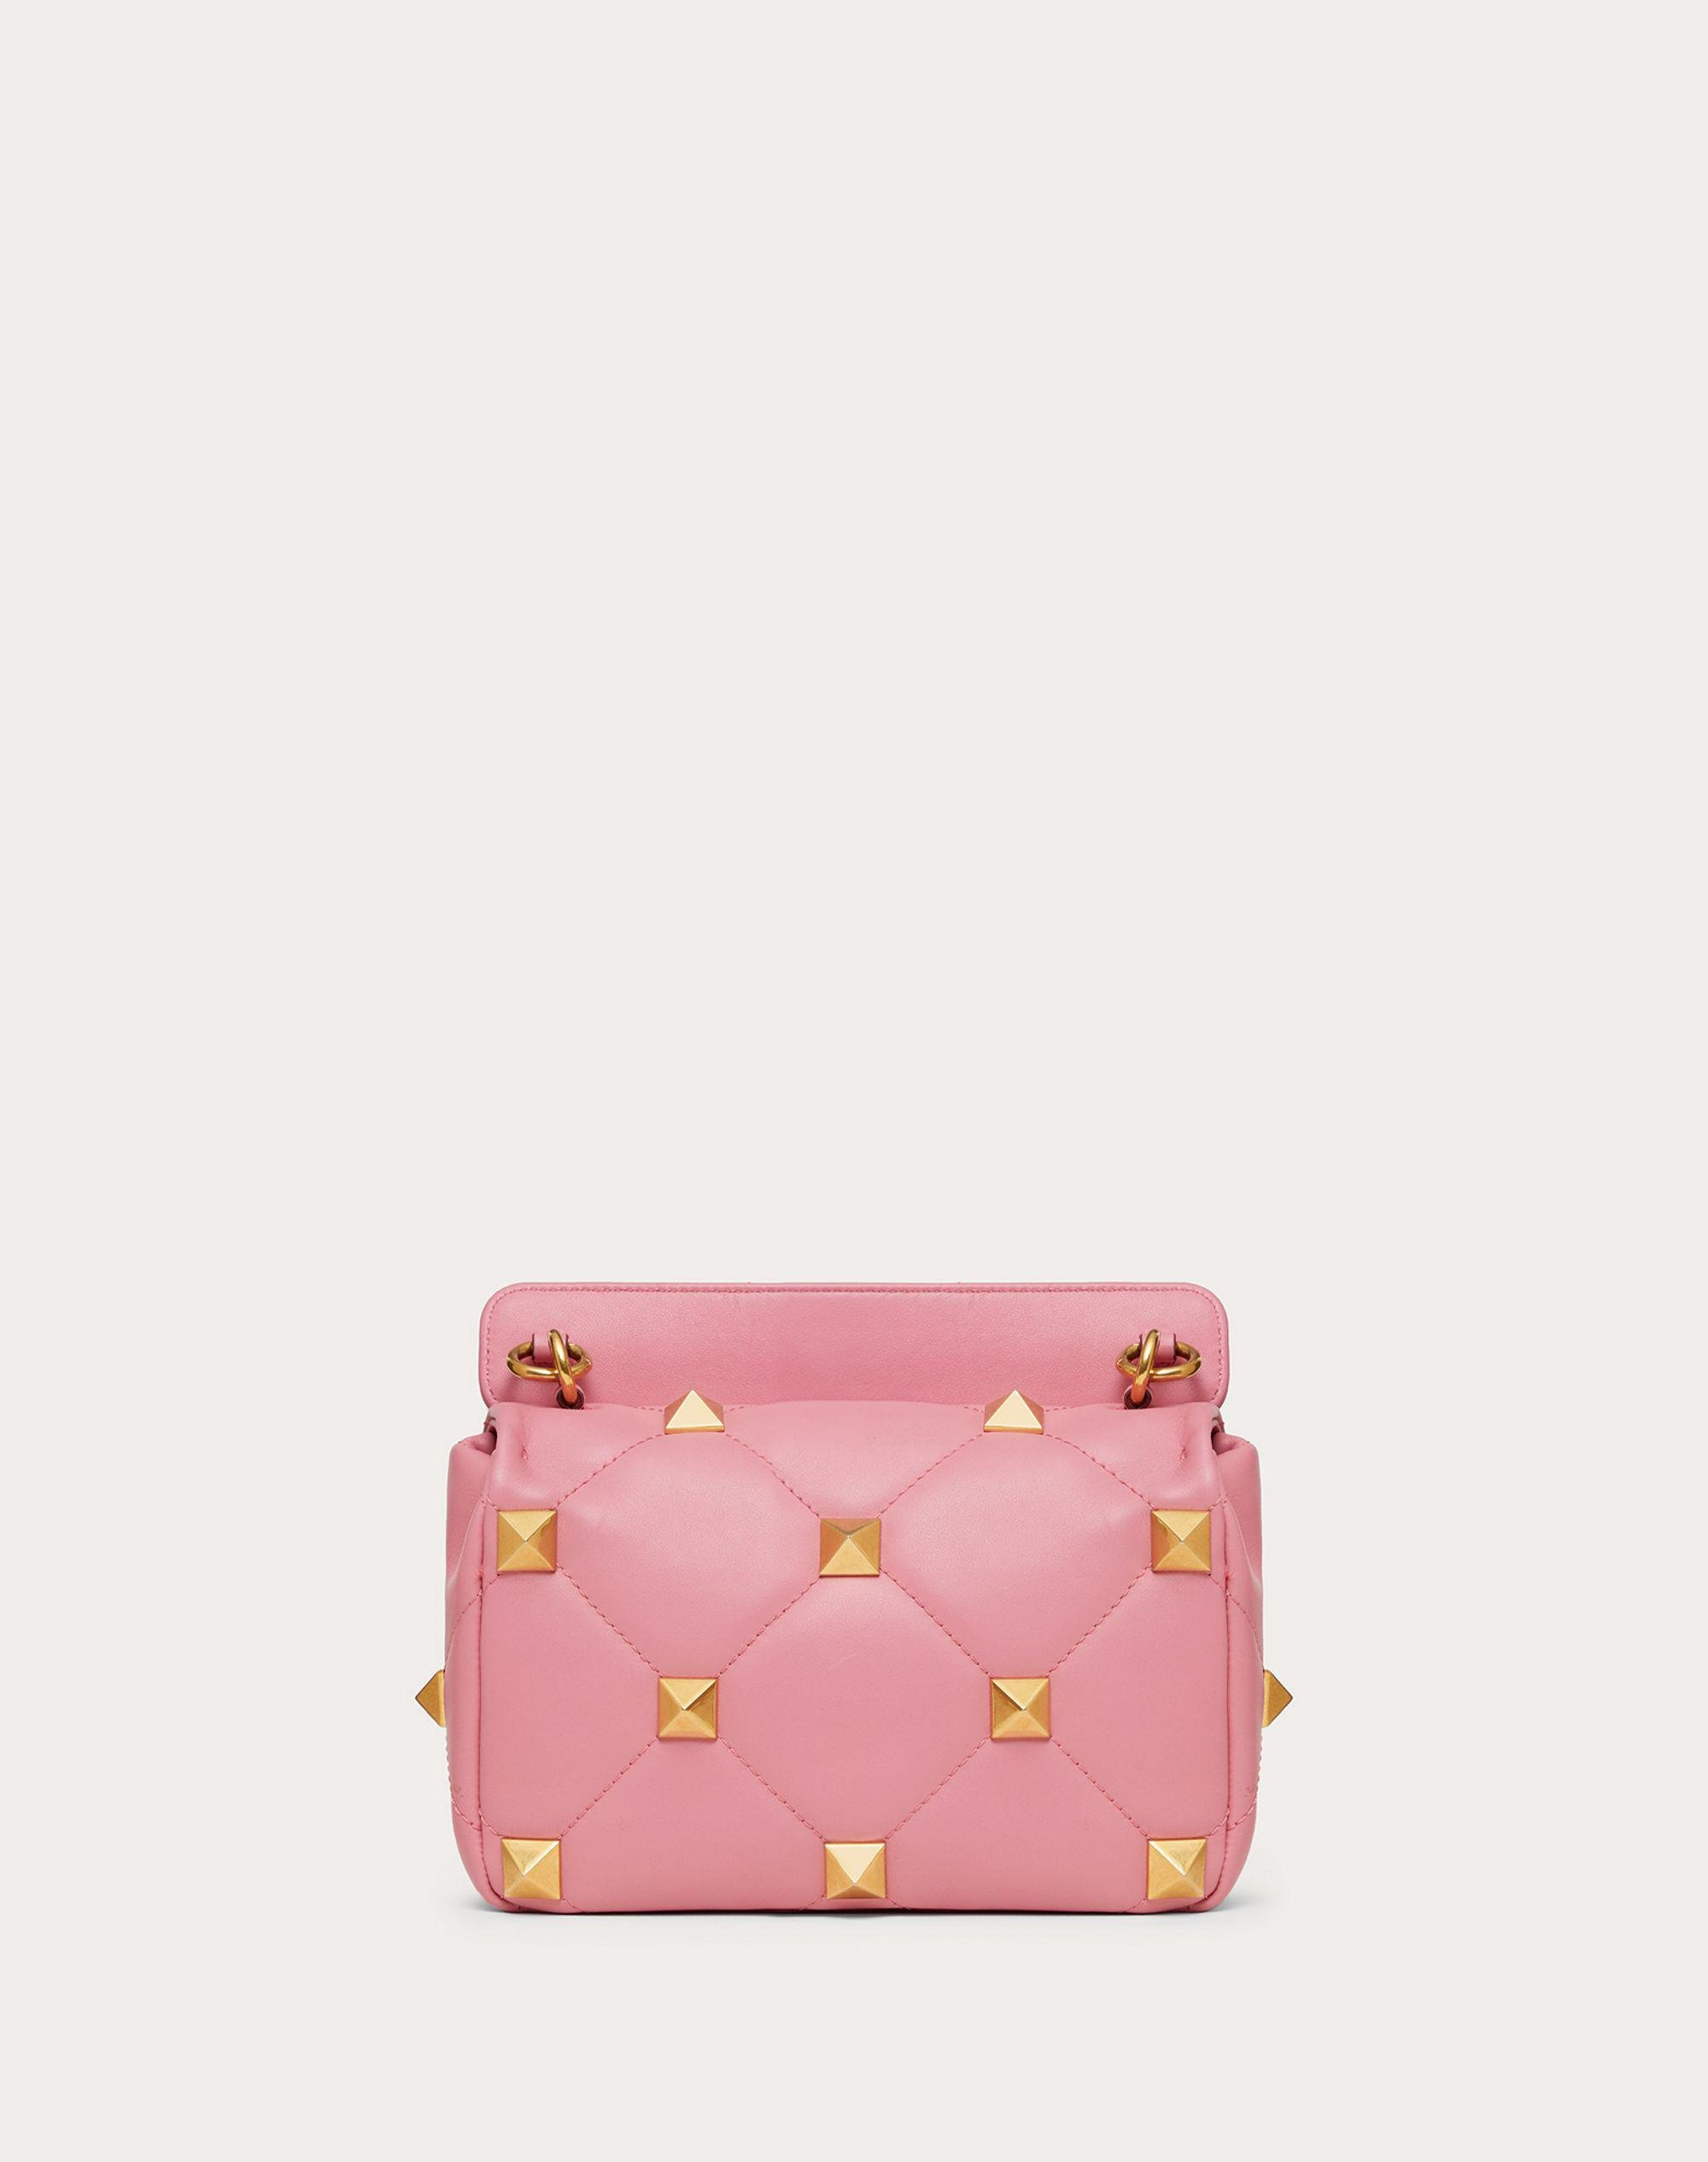 Medium Roman Stud The Shoulder Bag in Nappa with Chain 2